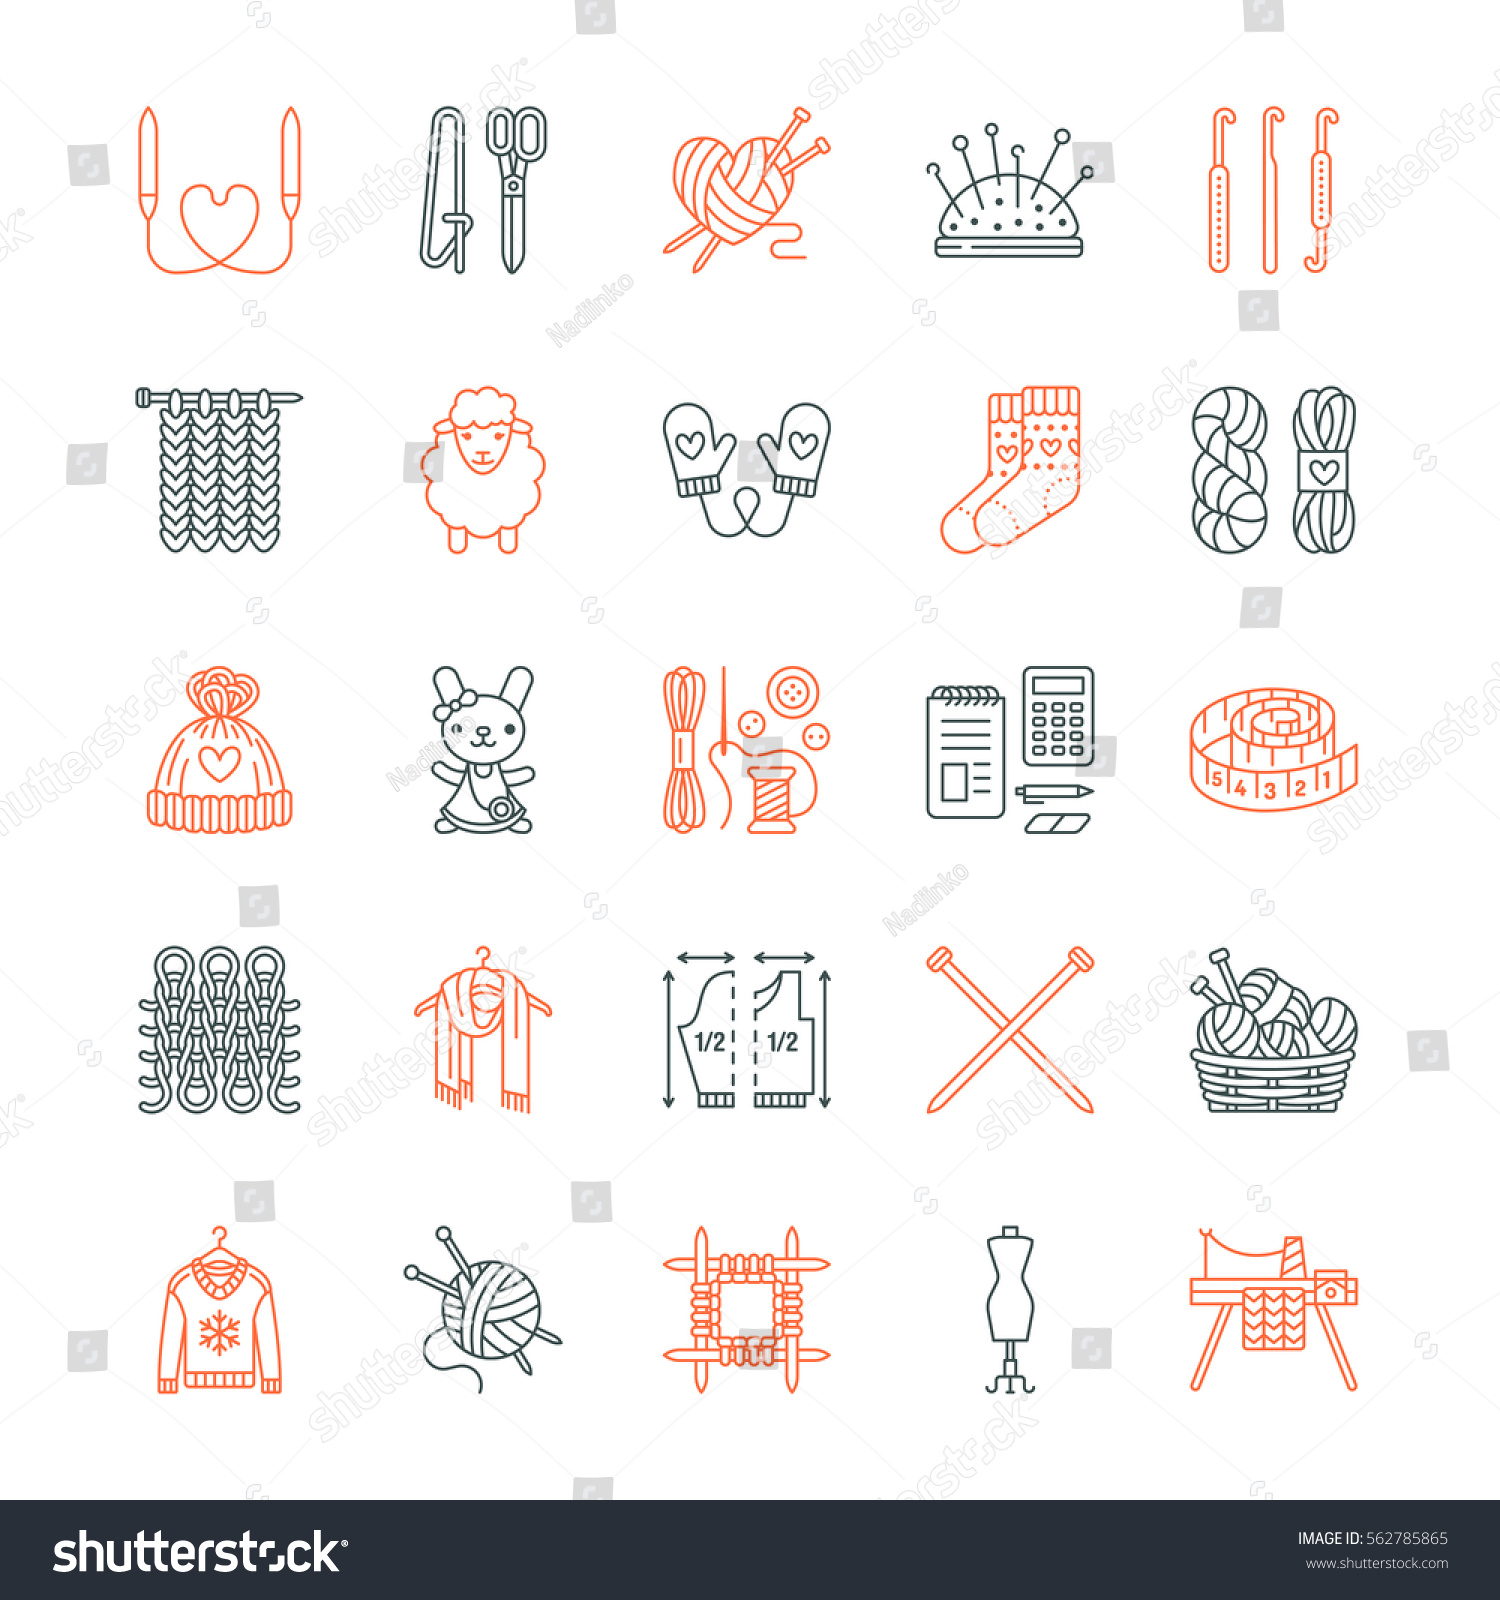 Knitting Crochet Hand Made Line Icons Vector de stock562785865 ...